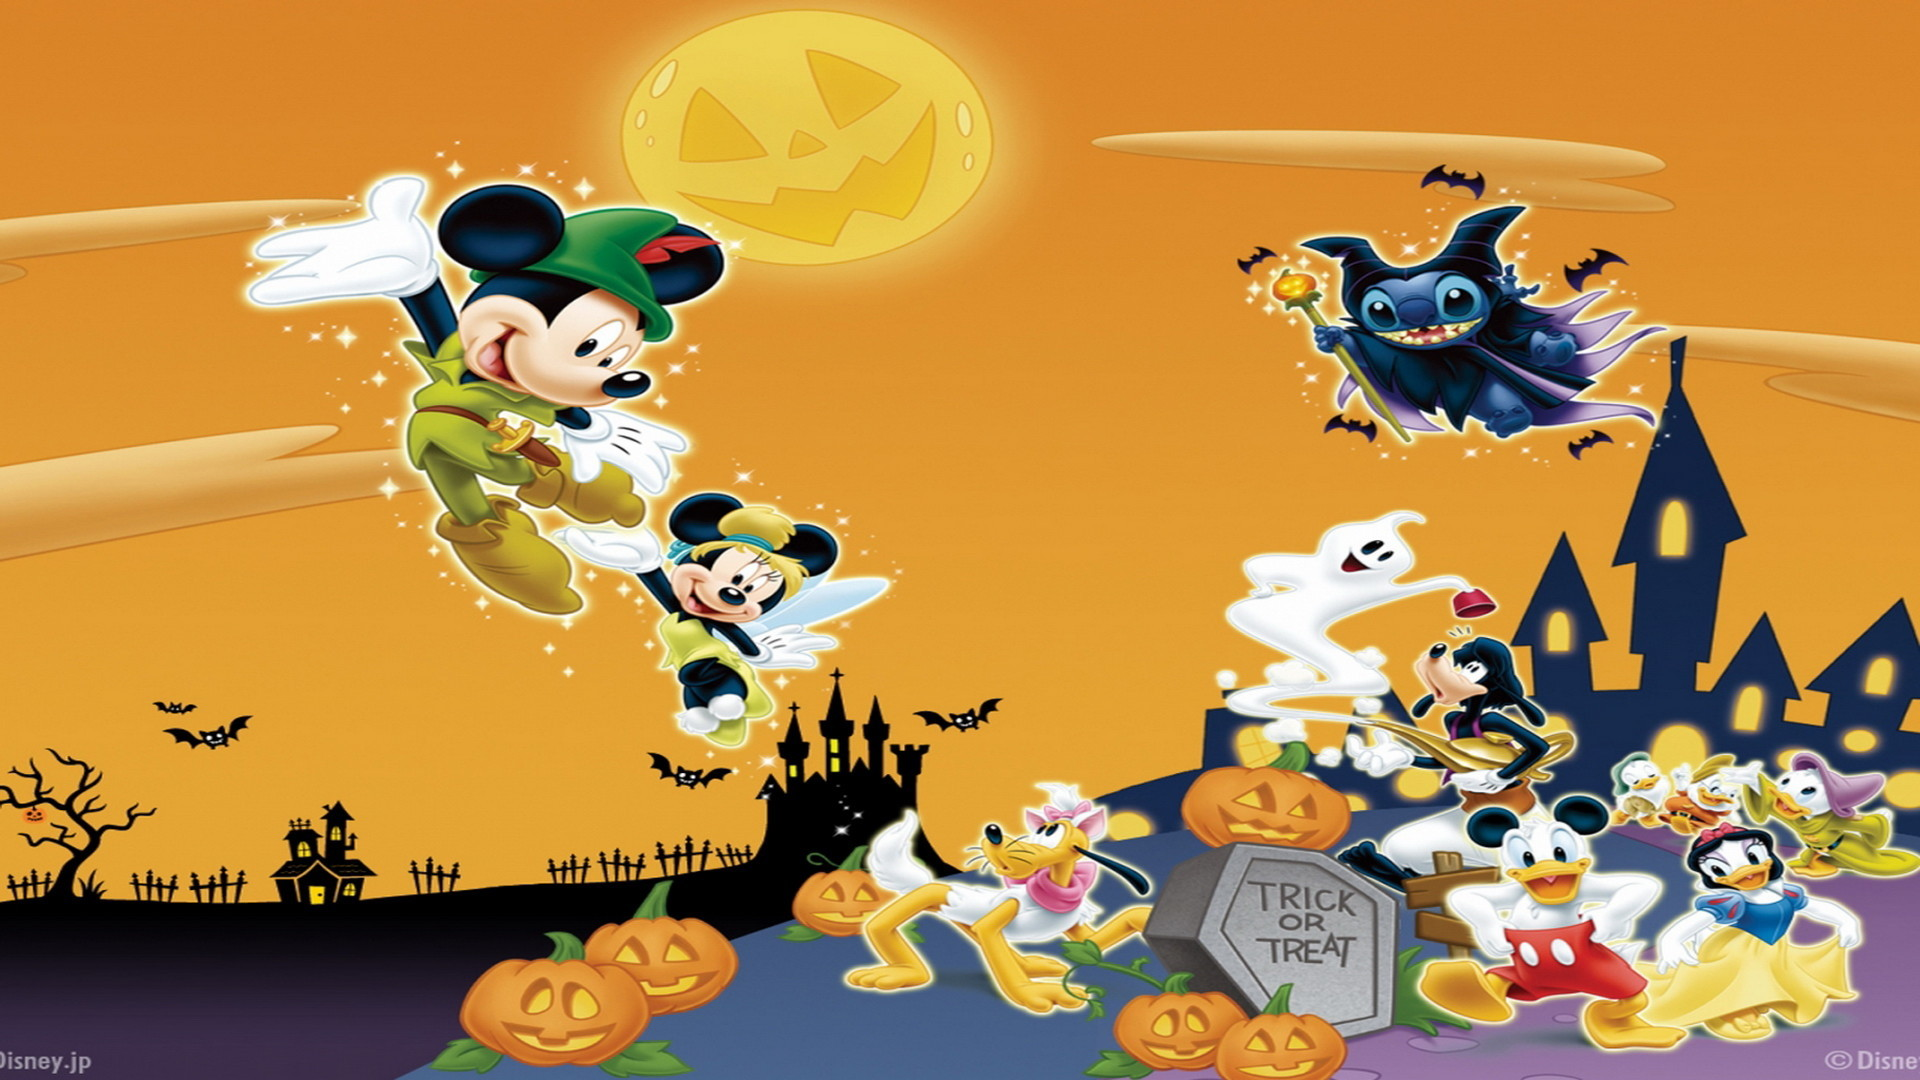 1920x1080  Halloween At Disney Land Wallpapers - Your HD Wallpaper (shared  via SlingPic)